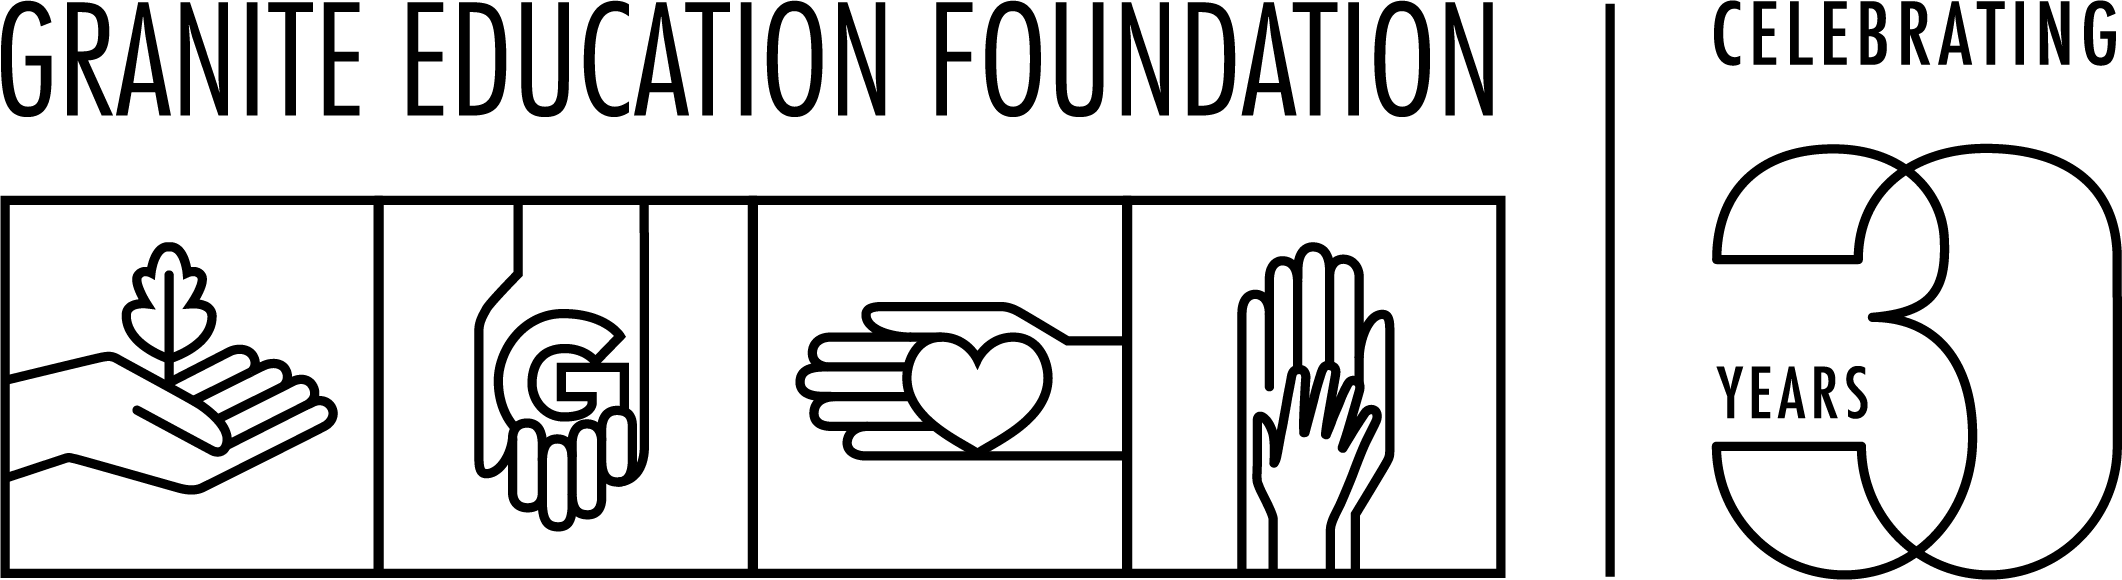 Granite-education-foundation-logo